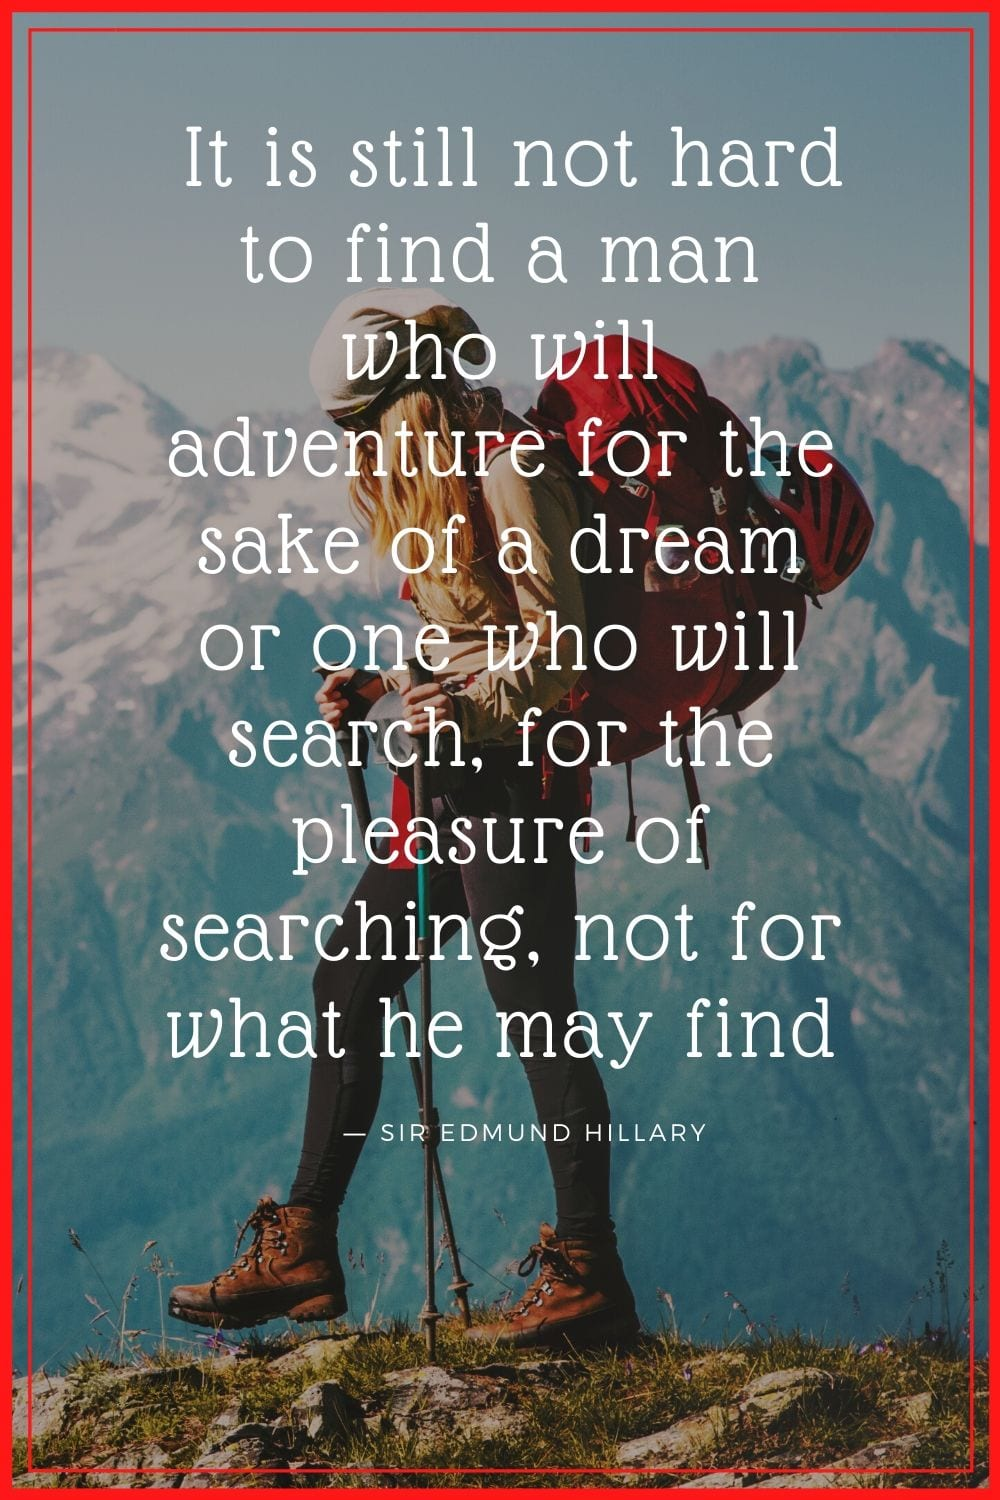 "It is still not hard to find a man who will adventure for the sake of a dream or one who will search, for the pleasure of searching, not for what he may find."" Quote about adventurous souls by Sir Edmund Hillary"